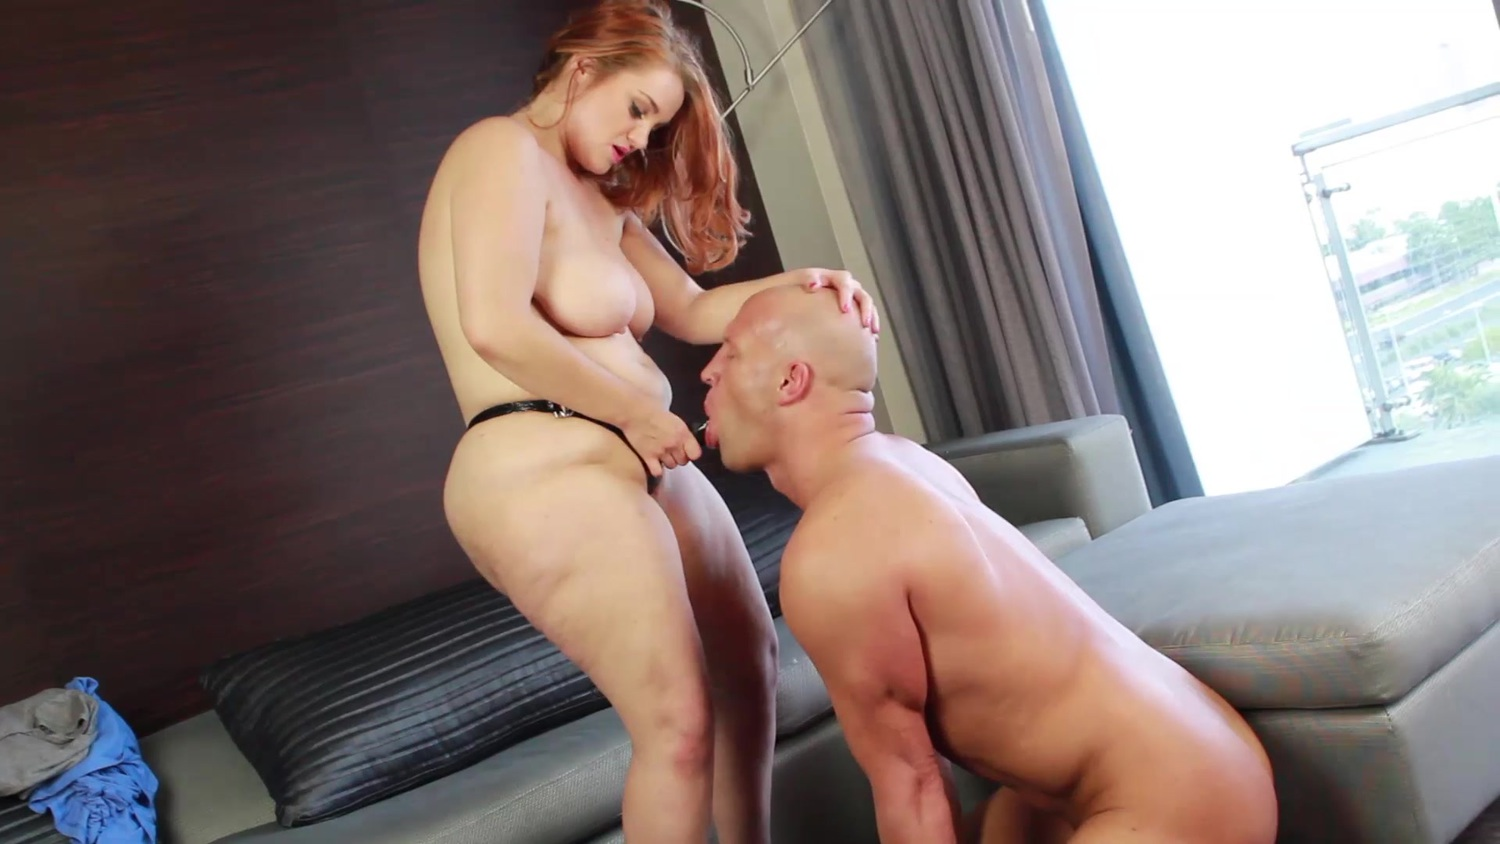 Porn star busty strapon men glutes that girl!